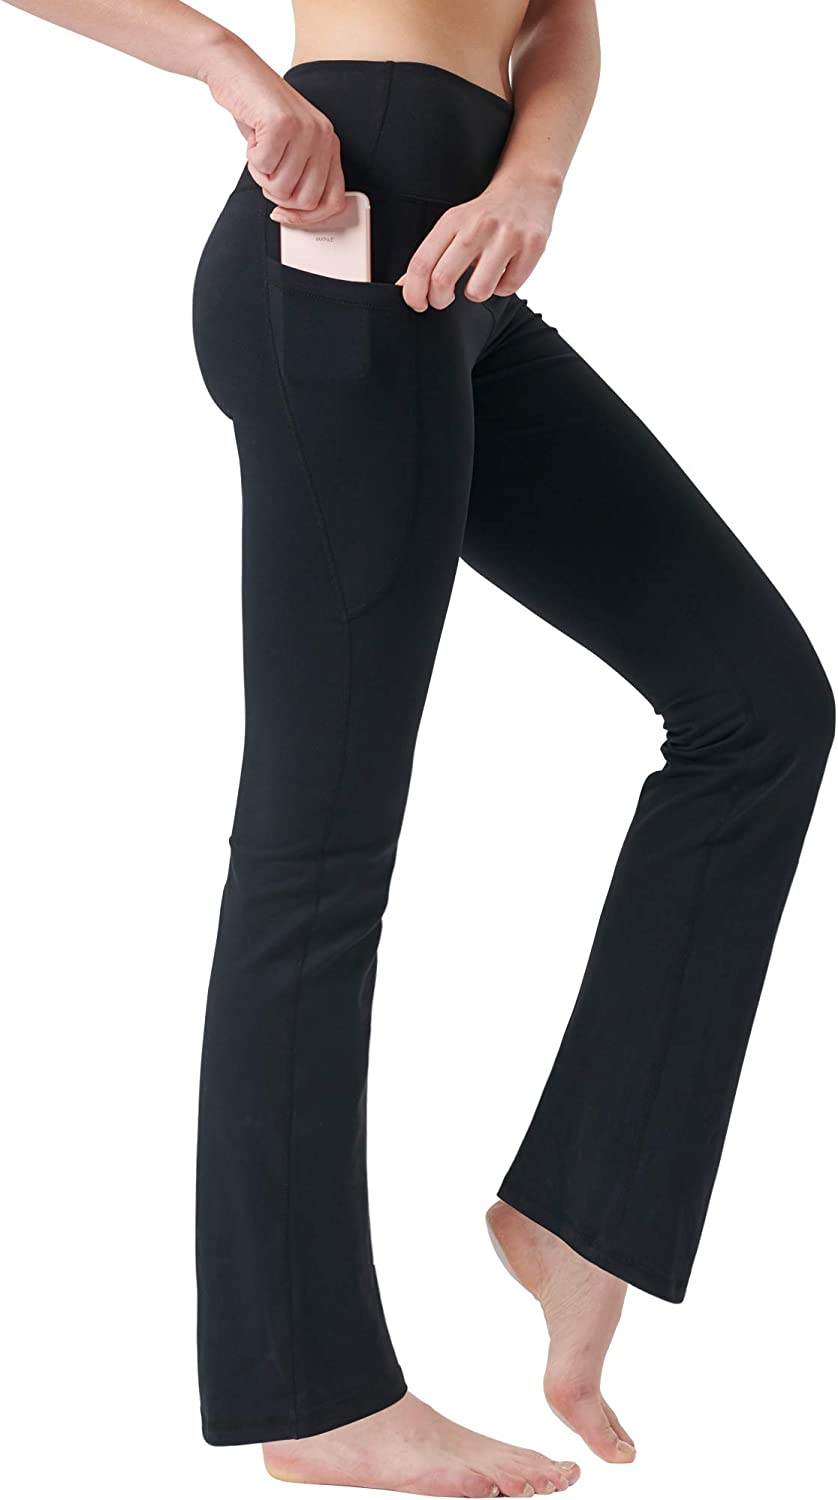 Zeronic High Waist Yoga Pants with Pockets Tummy Control for Women 4 Way Stretch Leggings with Pockets